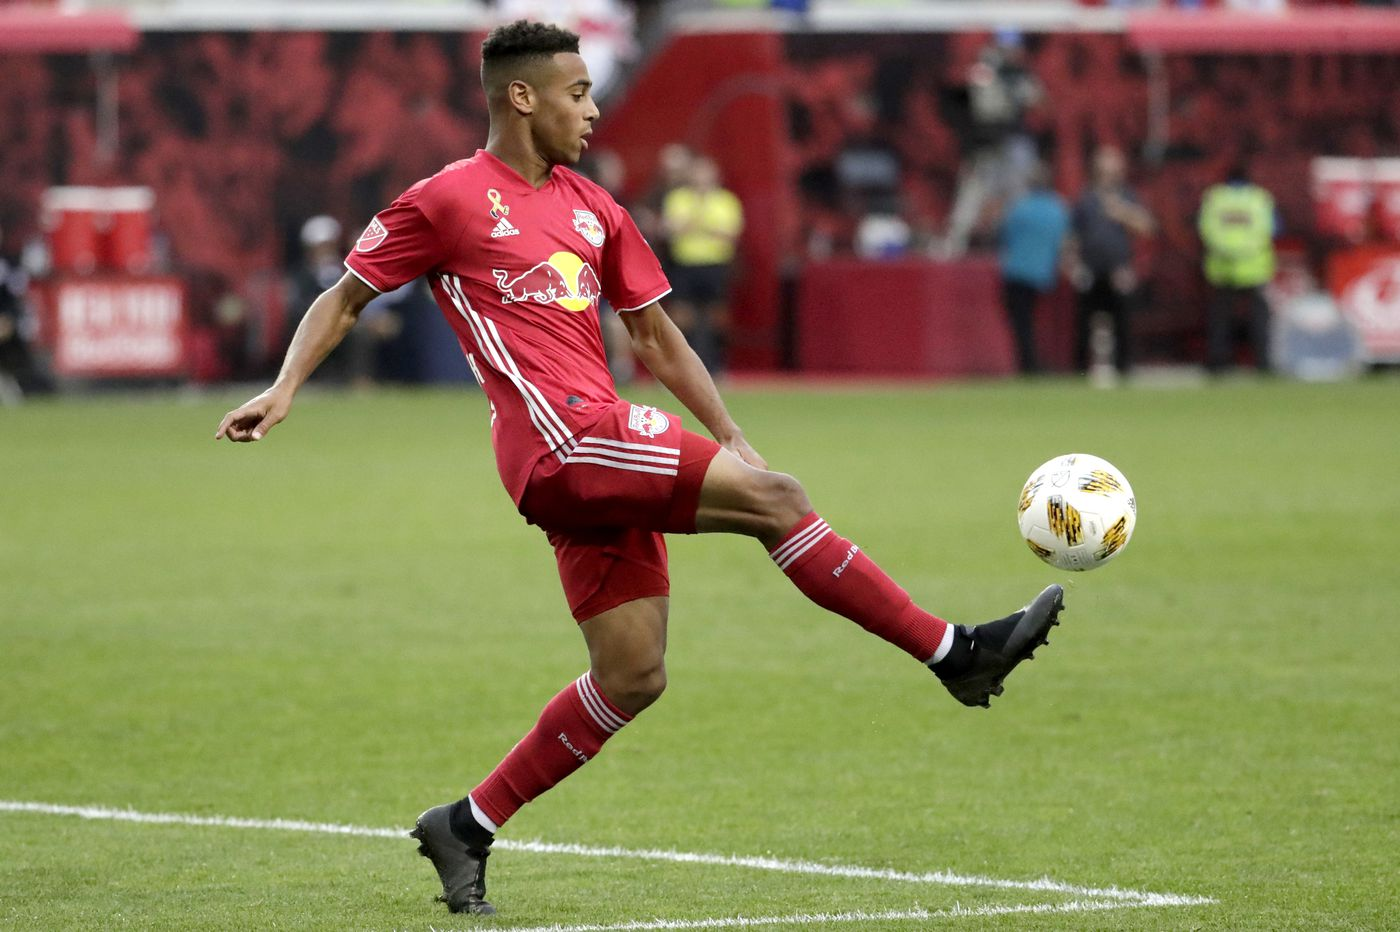 Union's Alejandro Bedoya sees a rising star in Red Bulls' Tyler Adams – and sees a bit of himself